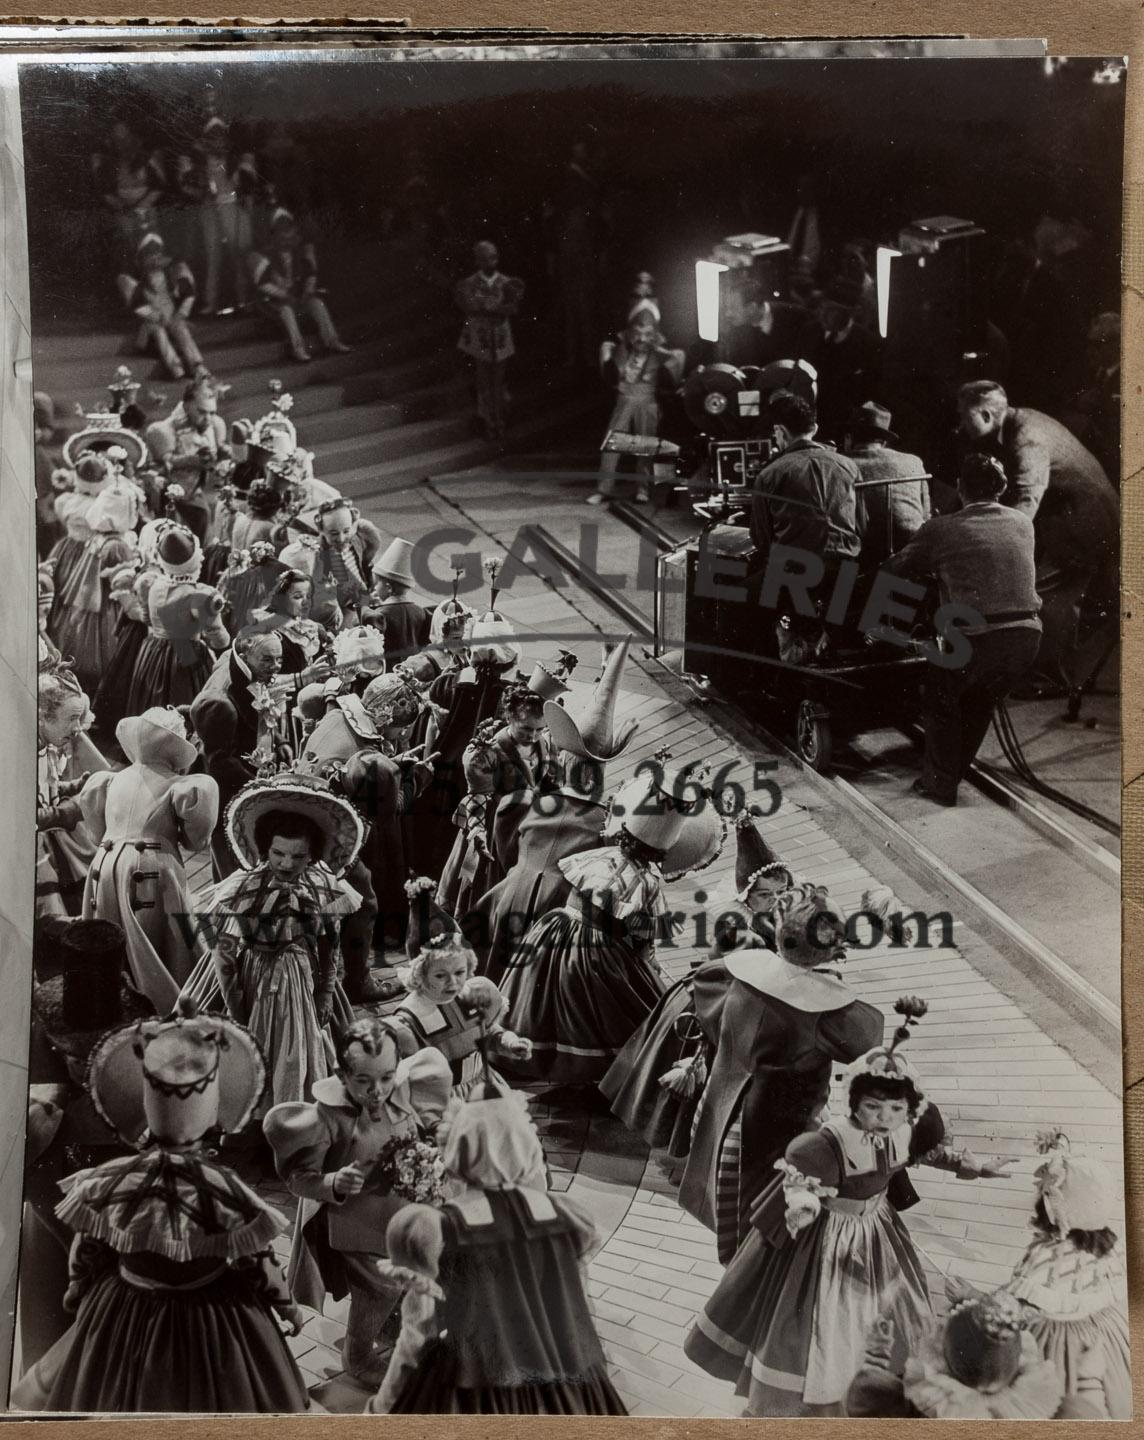 Production still of a dolly shot in The Wizard of Oz